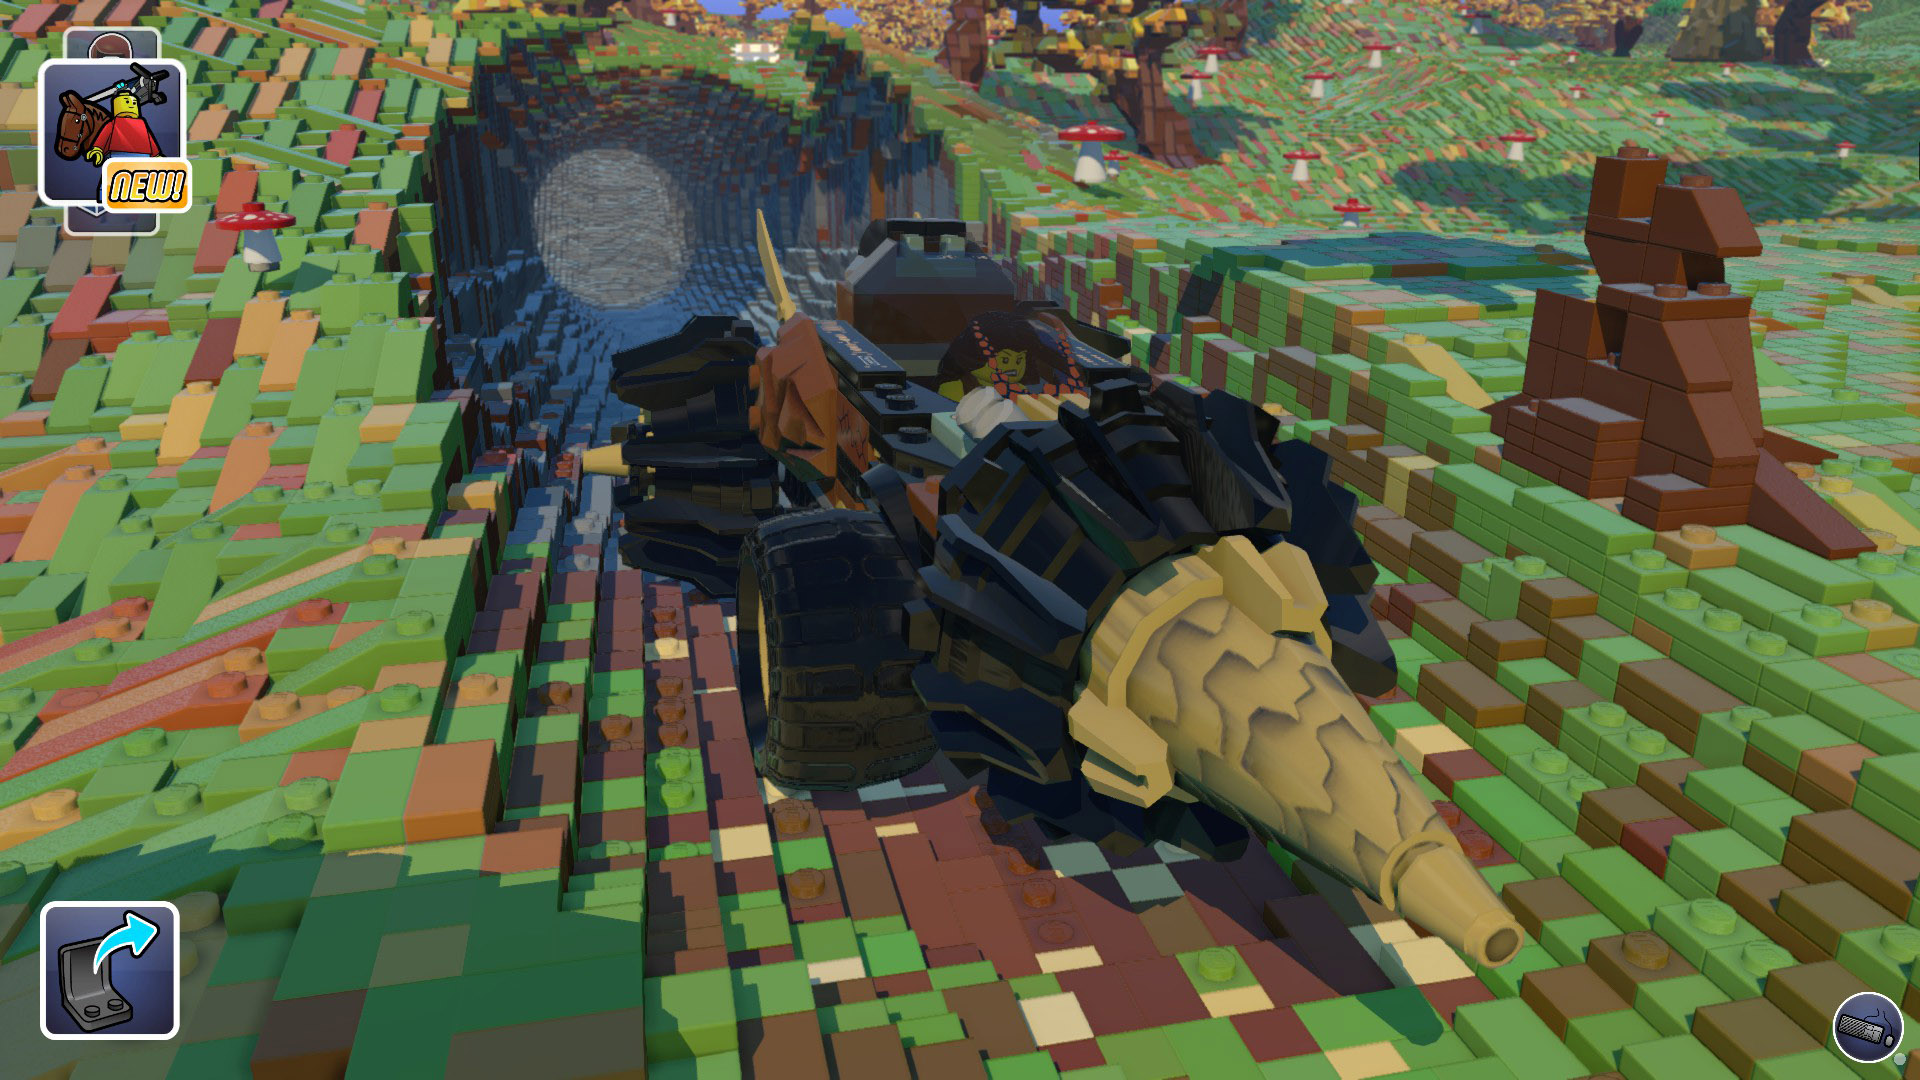 lego minecraft games to play online for free